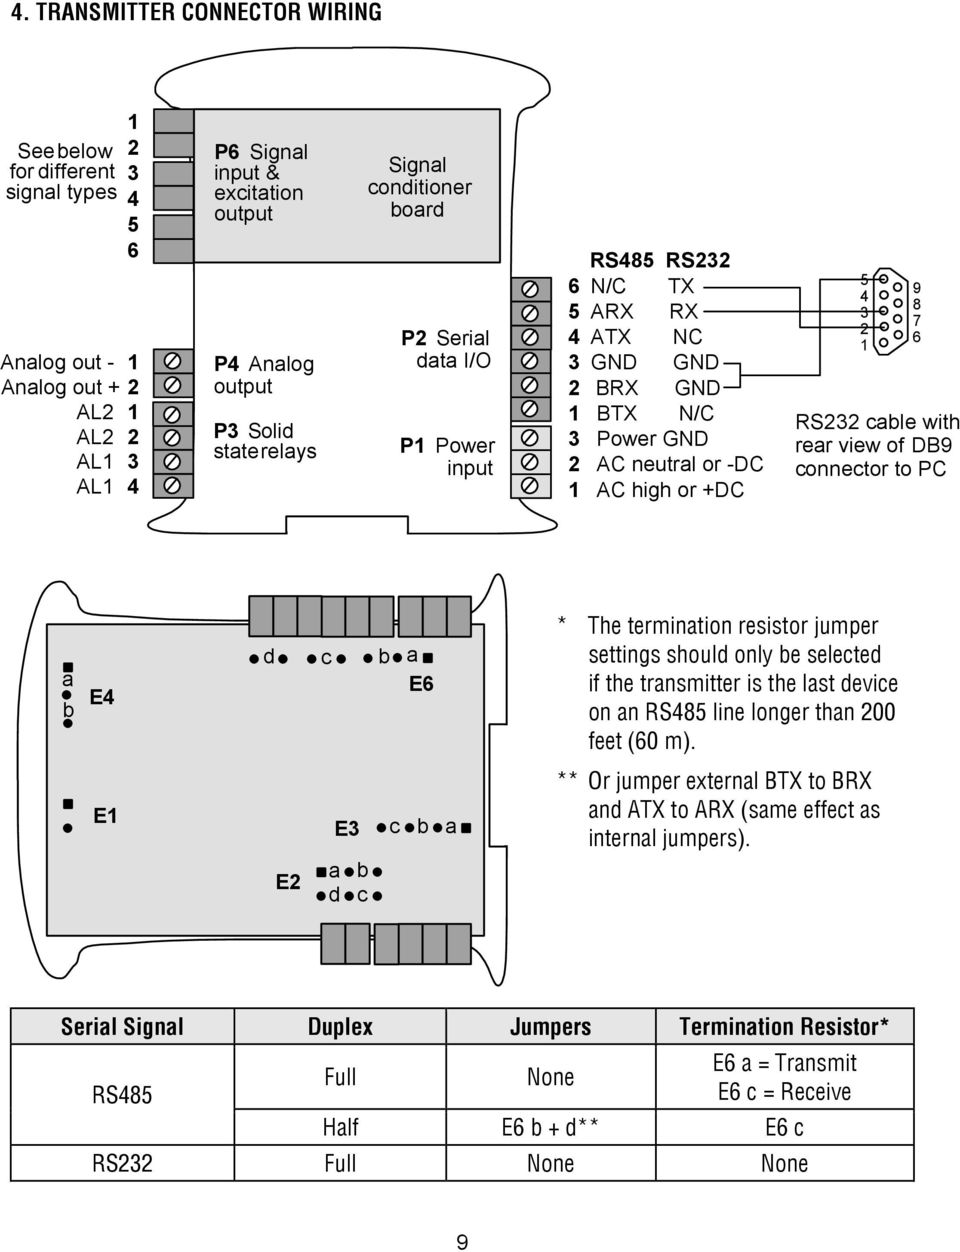 Custom Ascii Protocol Pdf Rs485 2 Wire Diagram 9 8 7 6 Rs232 Cable With Rear View Of Db9 Connector To Pc A B E4